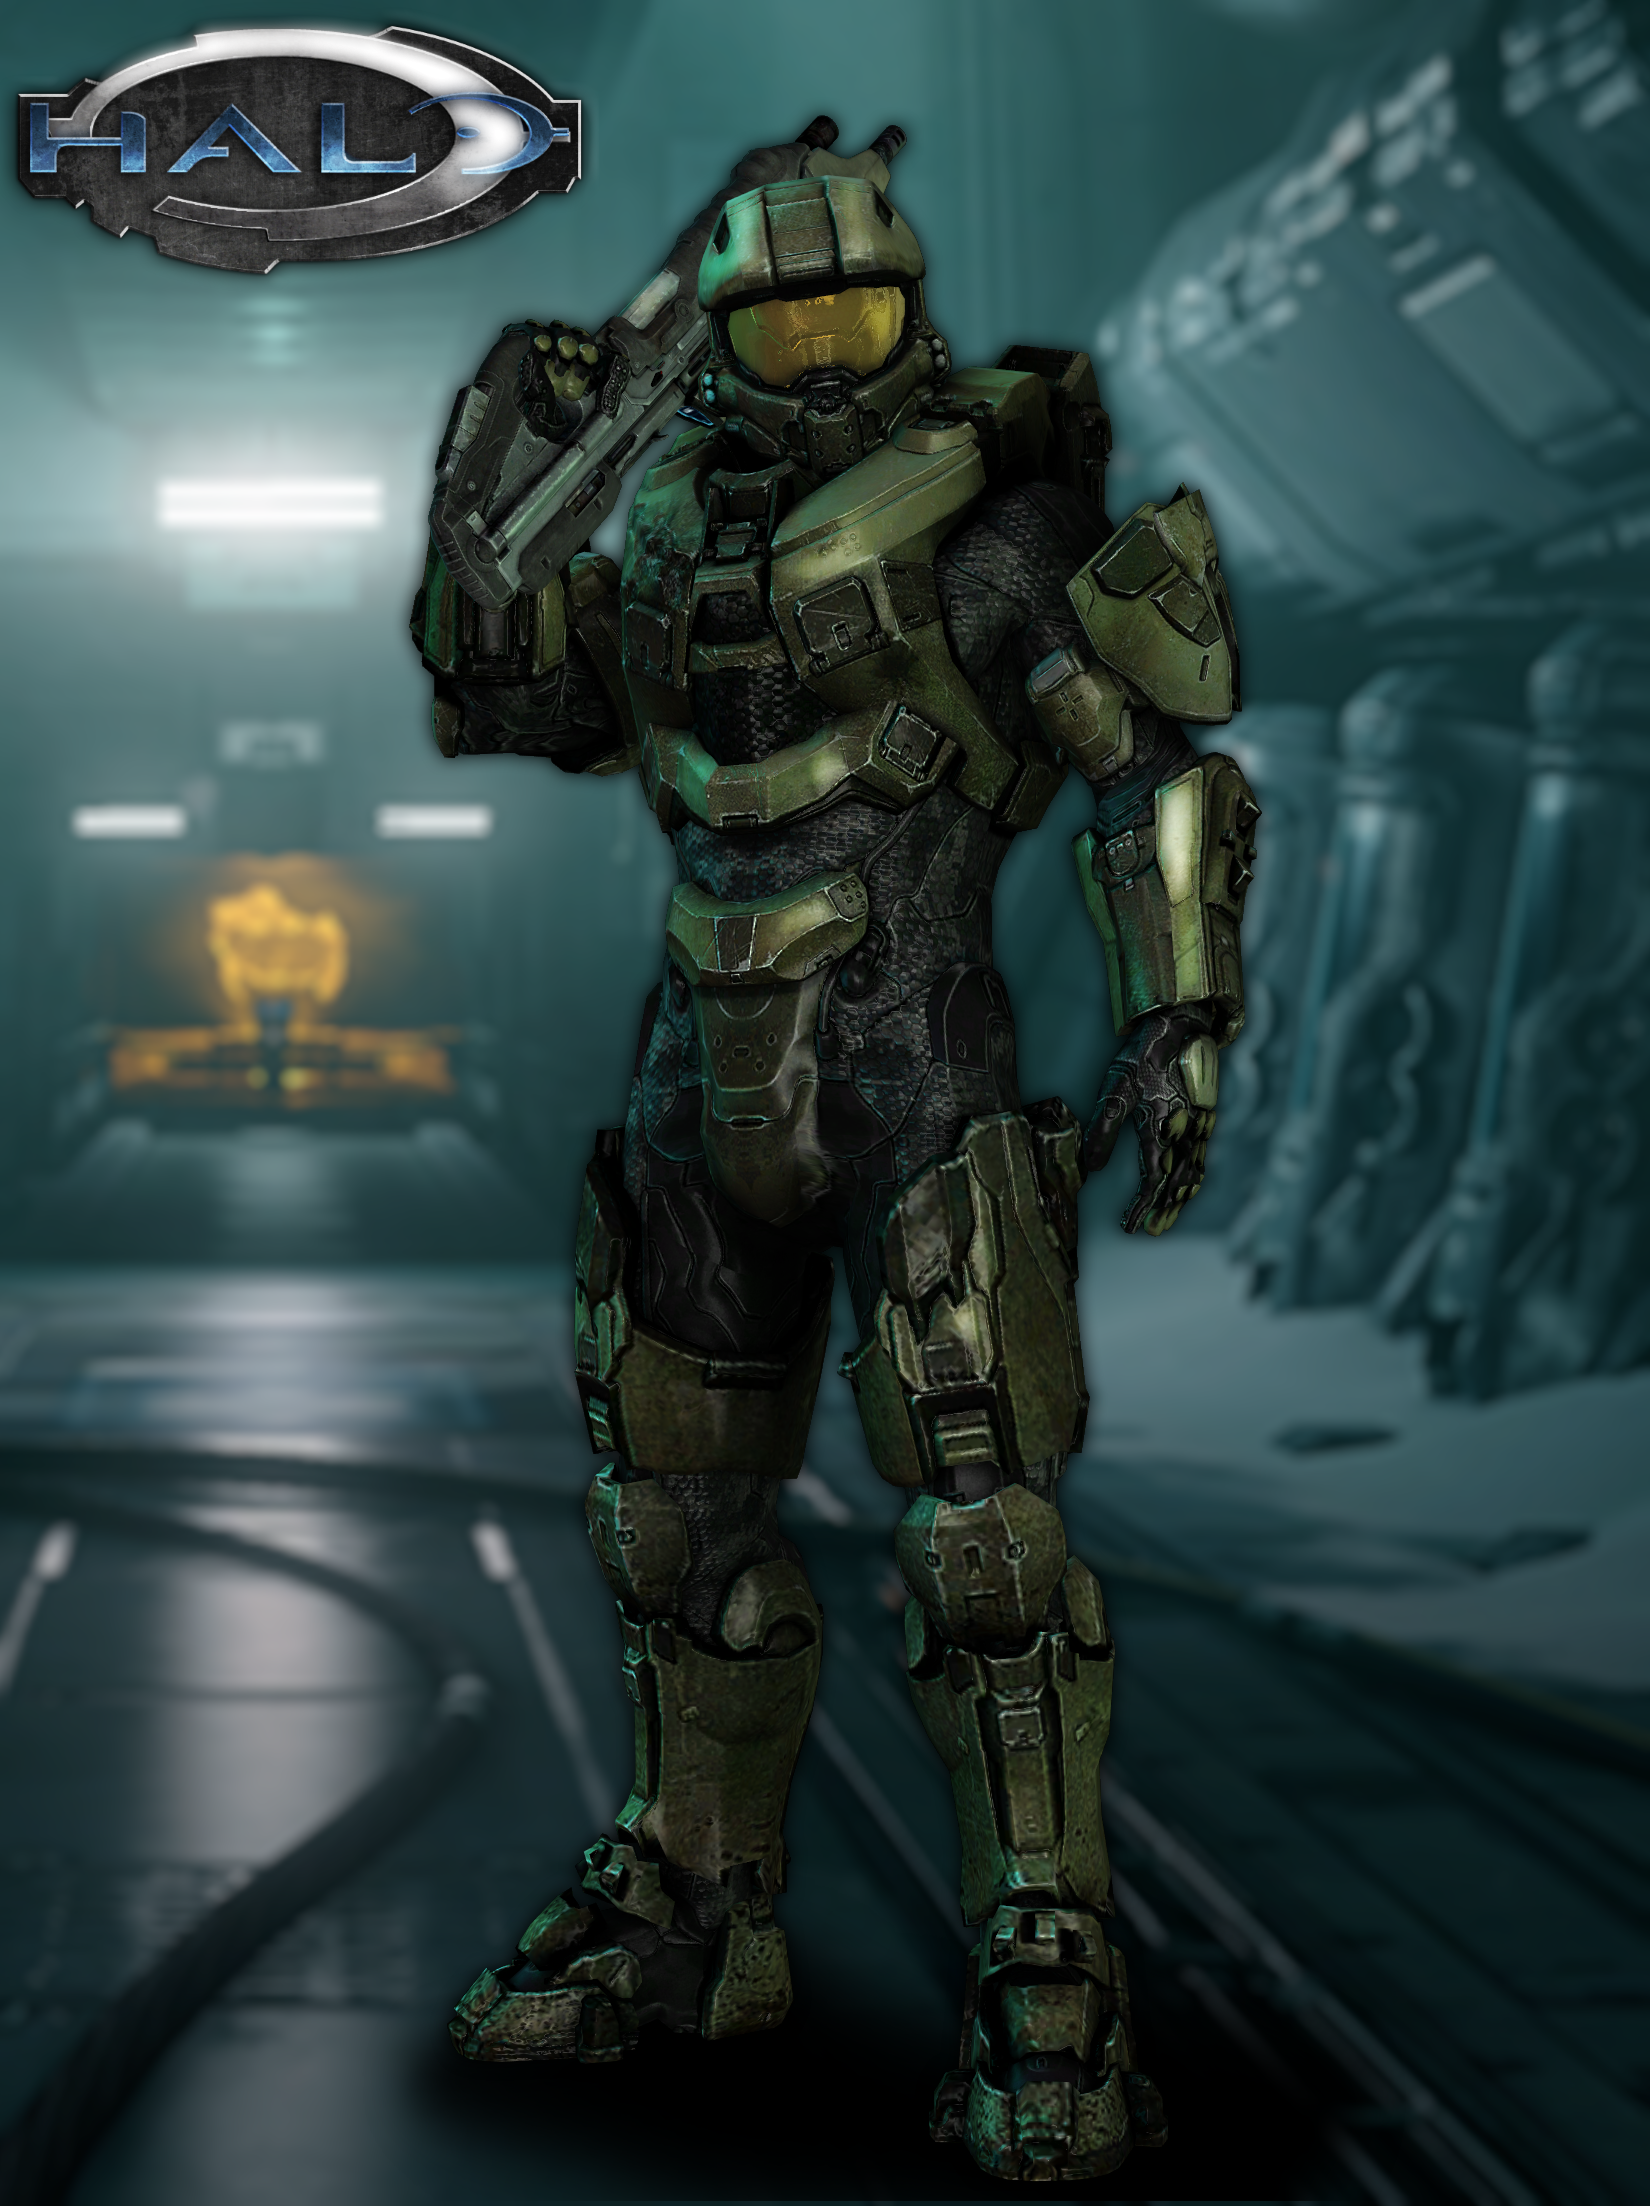 Master Chief Model - Halo 4 by LoneCarbineer on DeviantArt